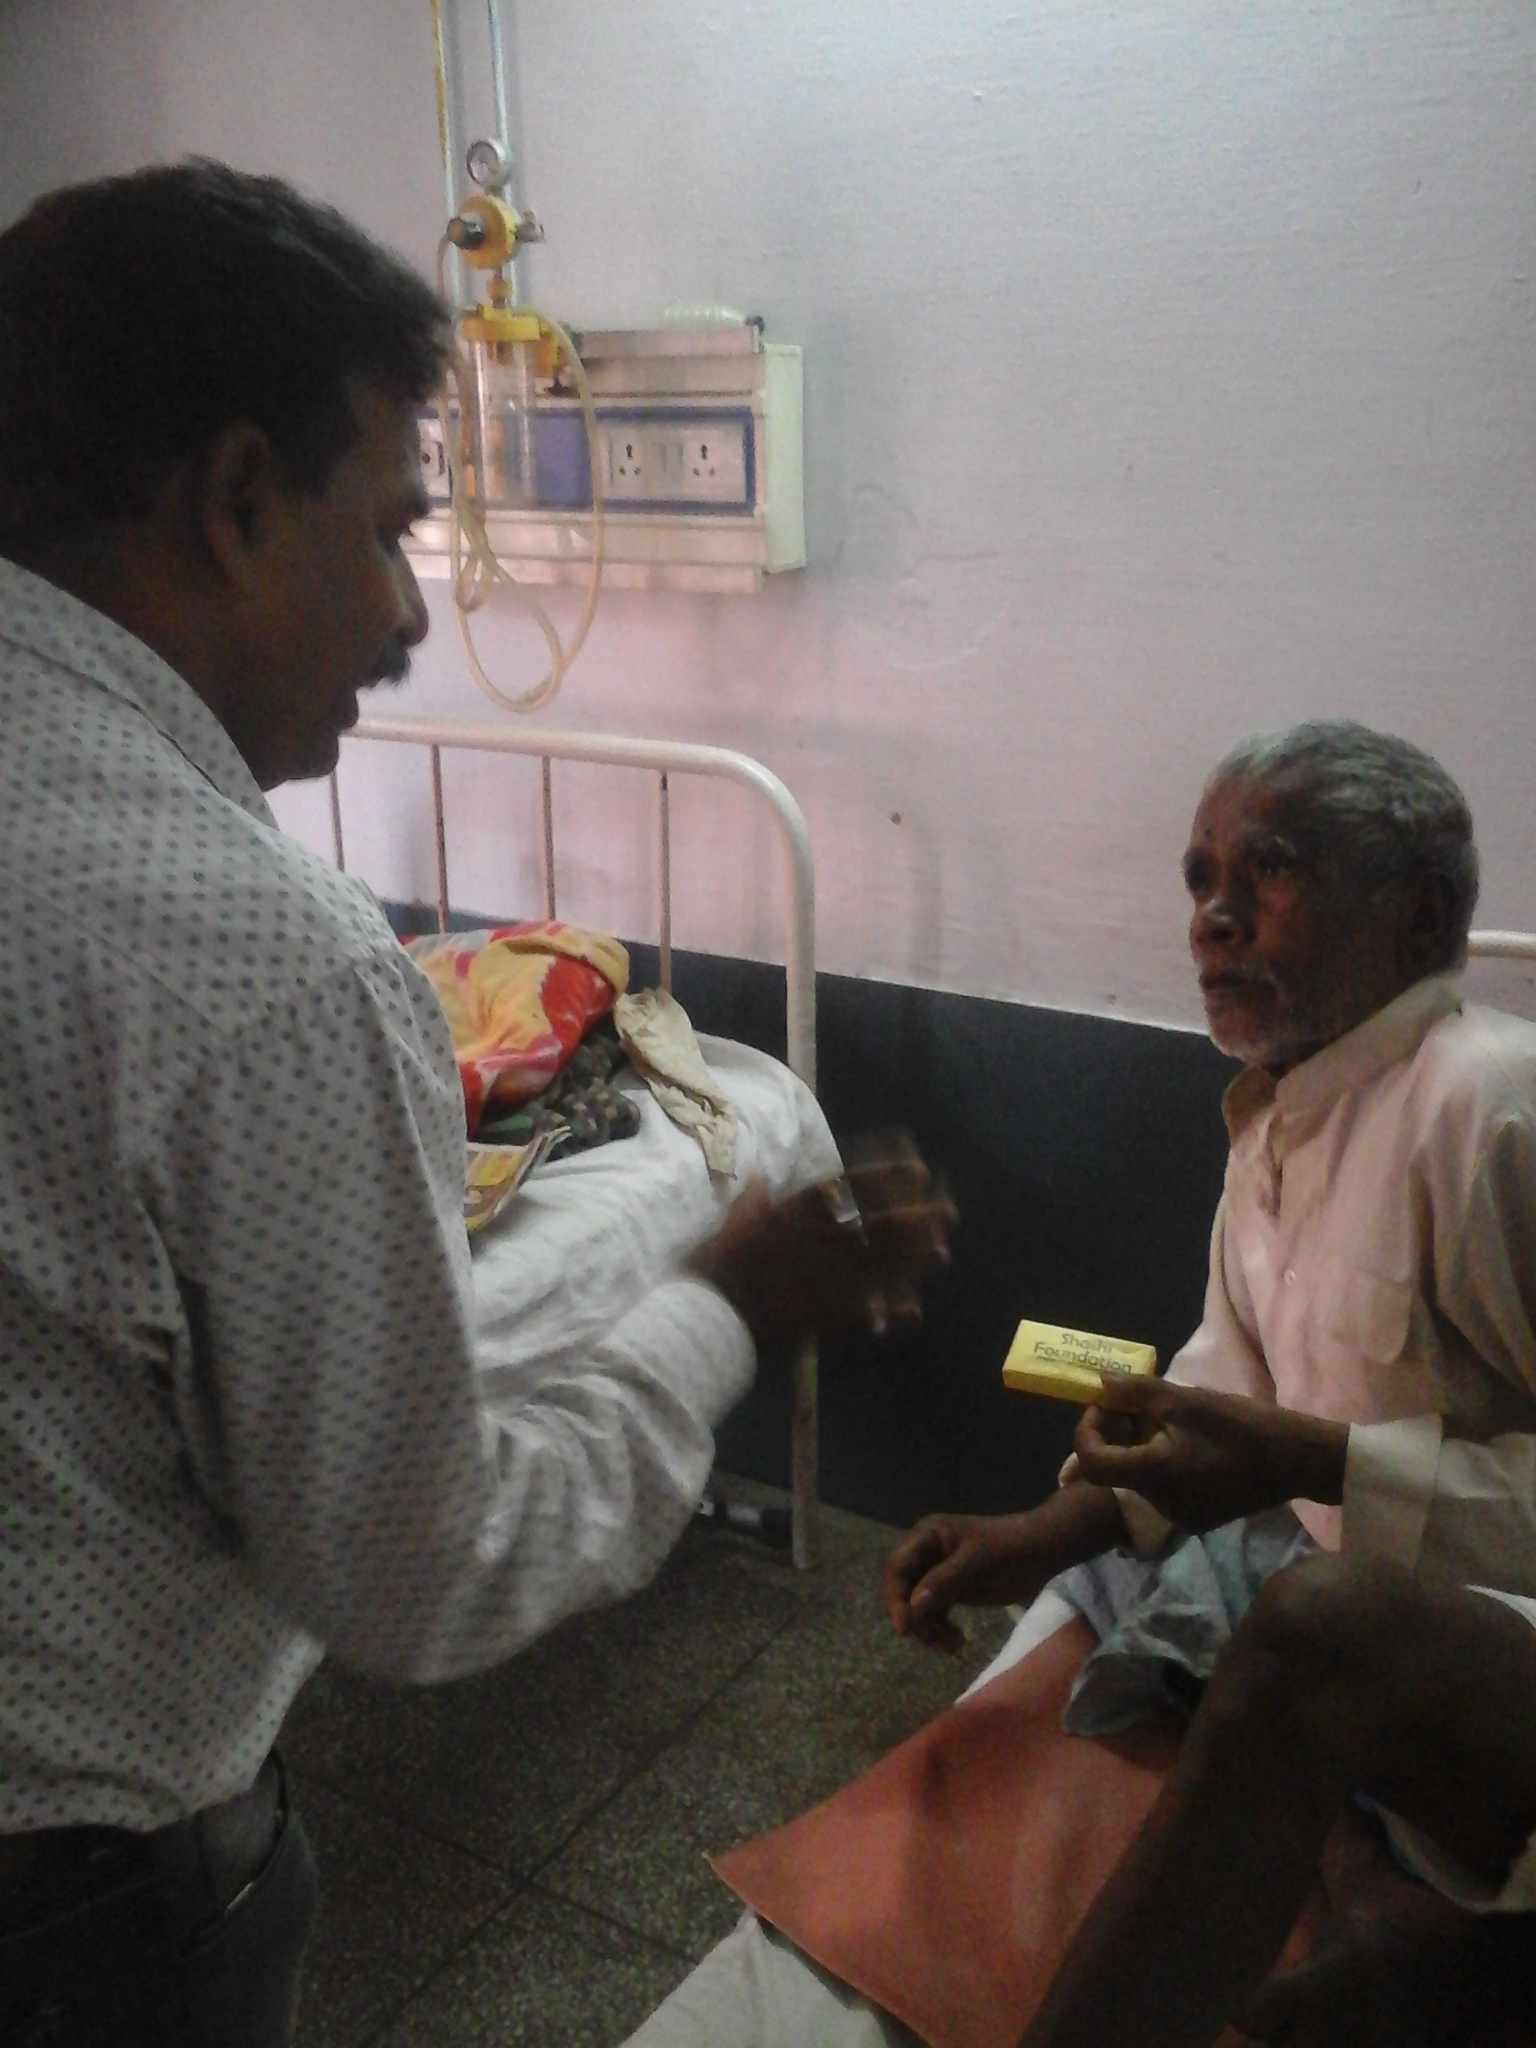 SOAP BEING DISTRIBUTED IN CIVIL HOSPITAL MORADABAD (U.P.) ON HAND HYGIENE DAY (5TH MAY 2015)